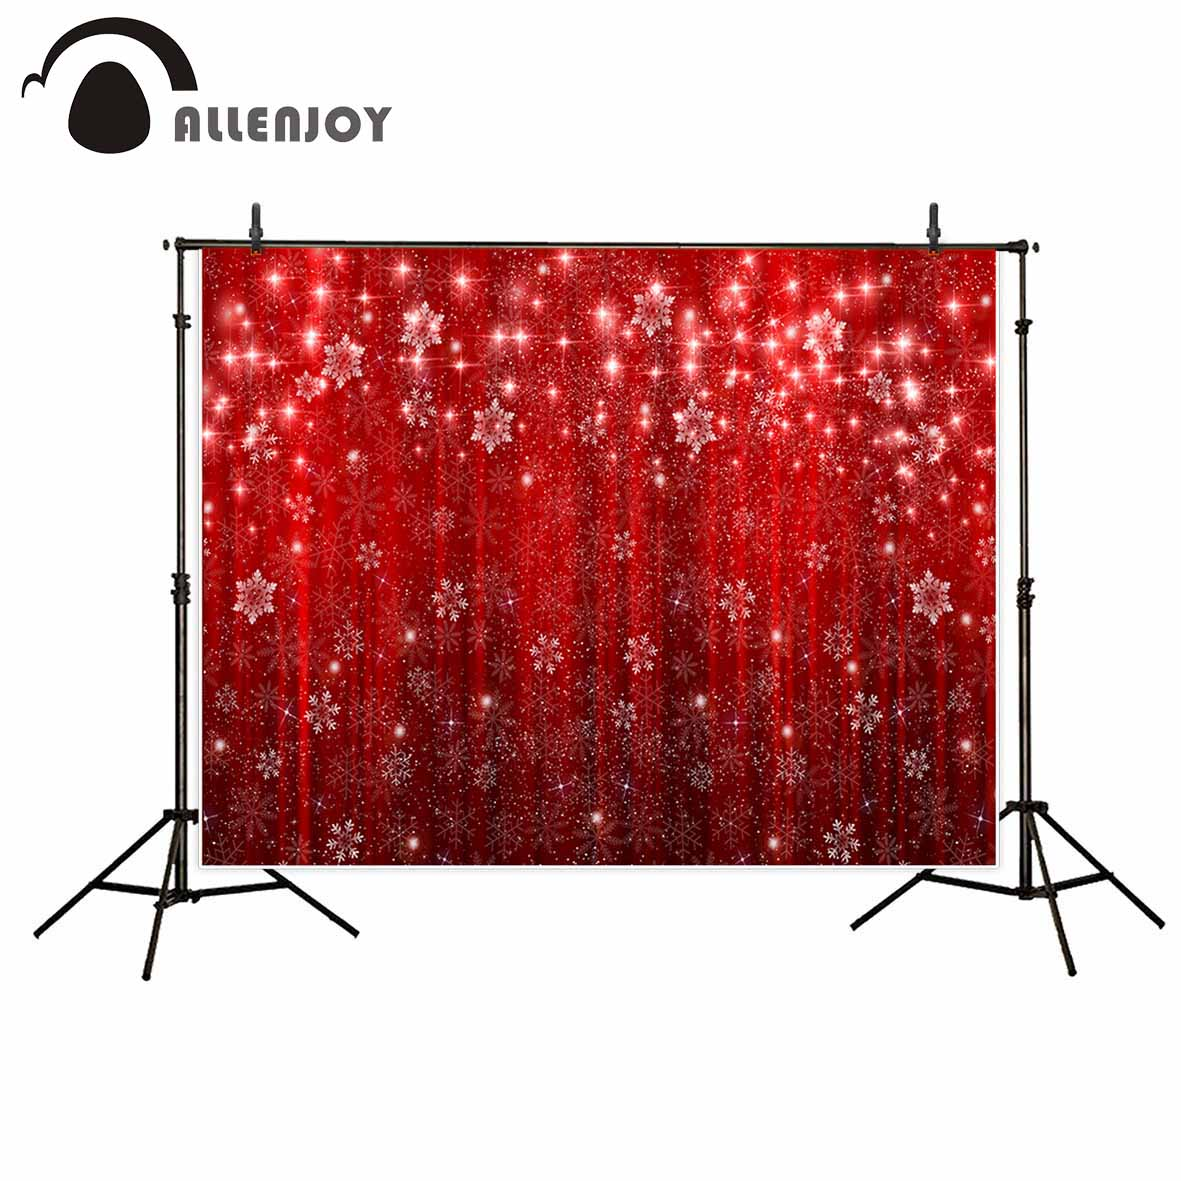 Allenjoy backdrop for photo studio red christmas snowflack glitter bokeh background photocall customize for kids allenjoy photography background blue red abstract christmas background golden stars glitter bokeh lights backdrop photo studio